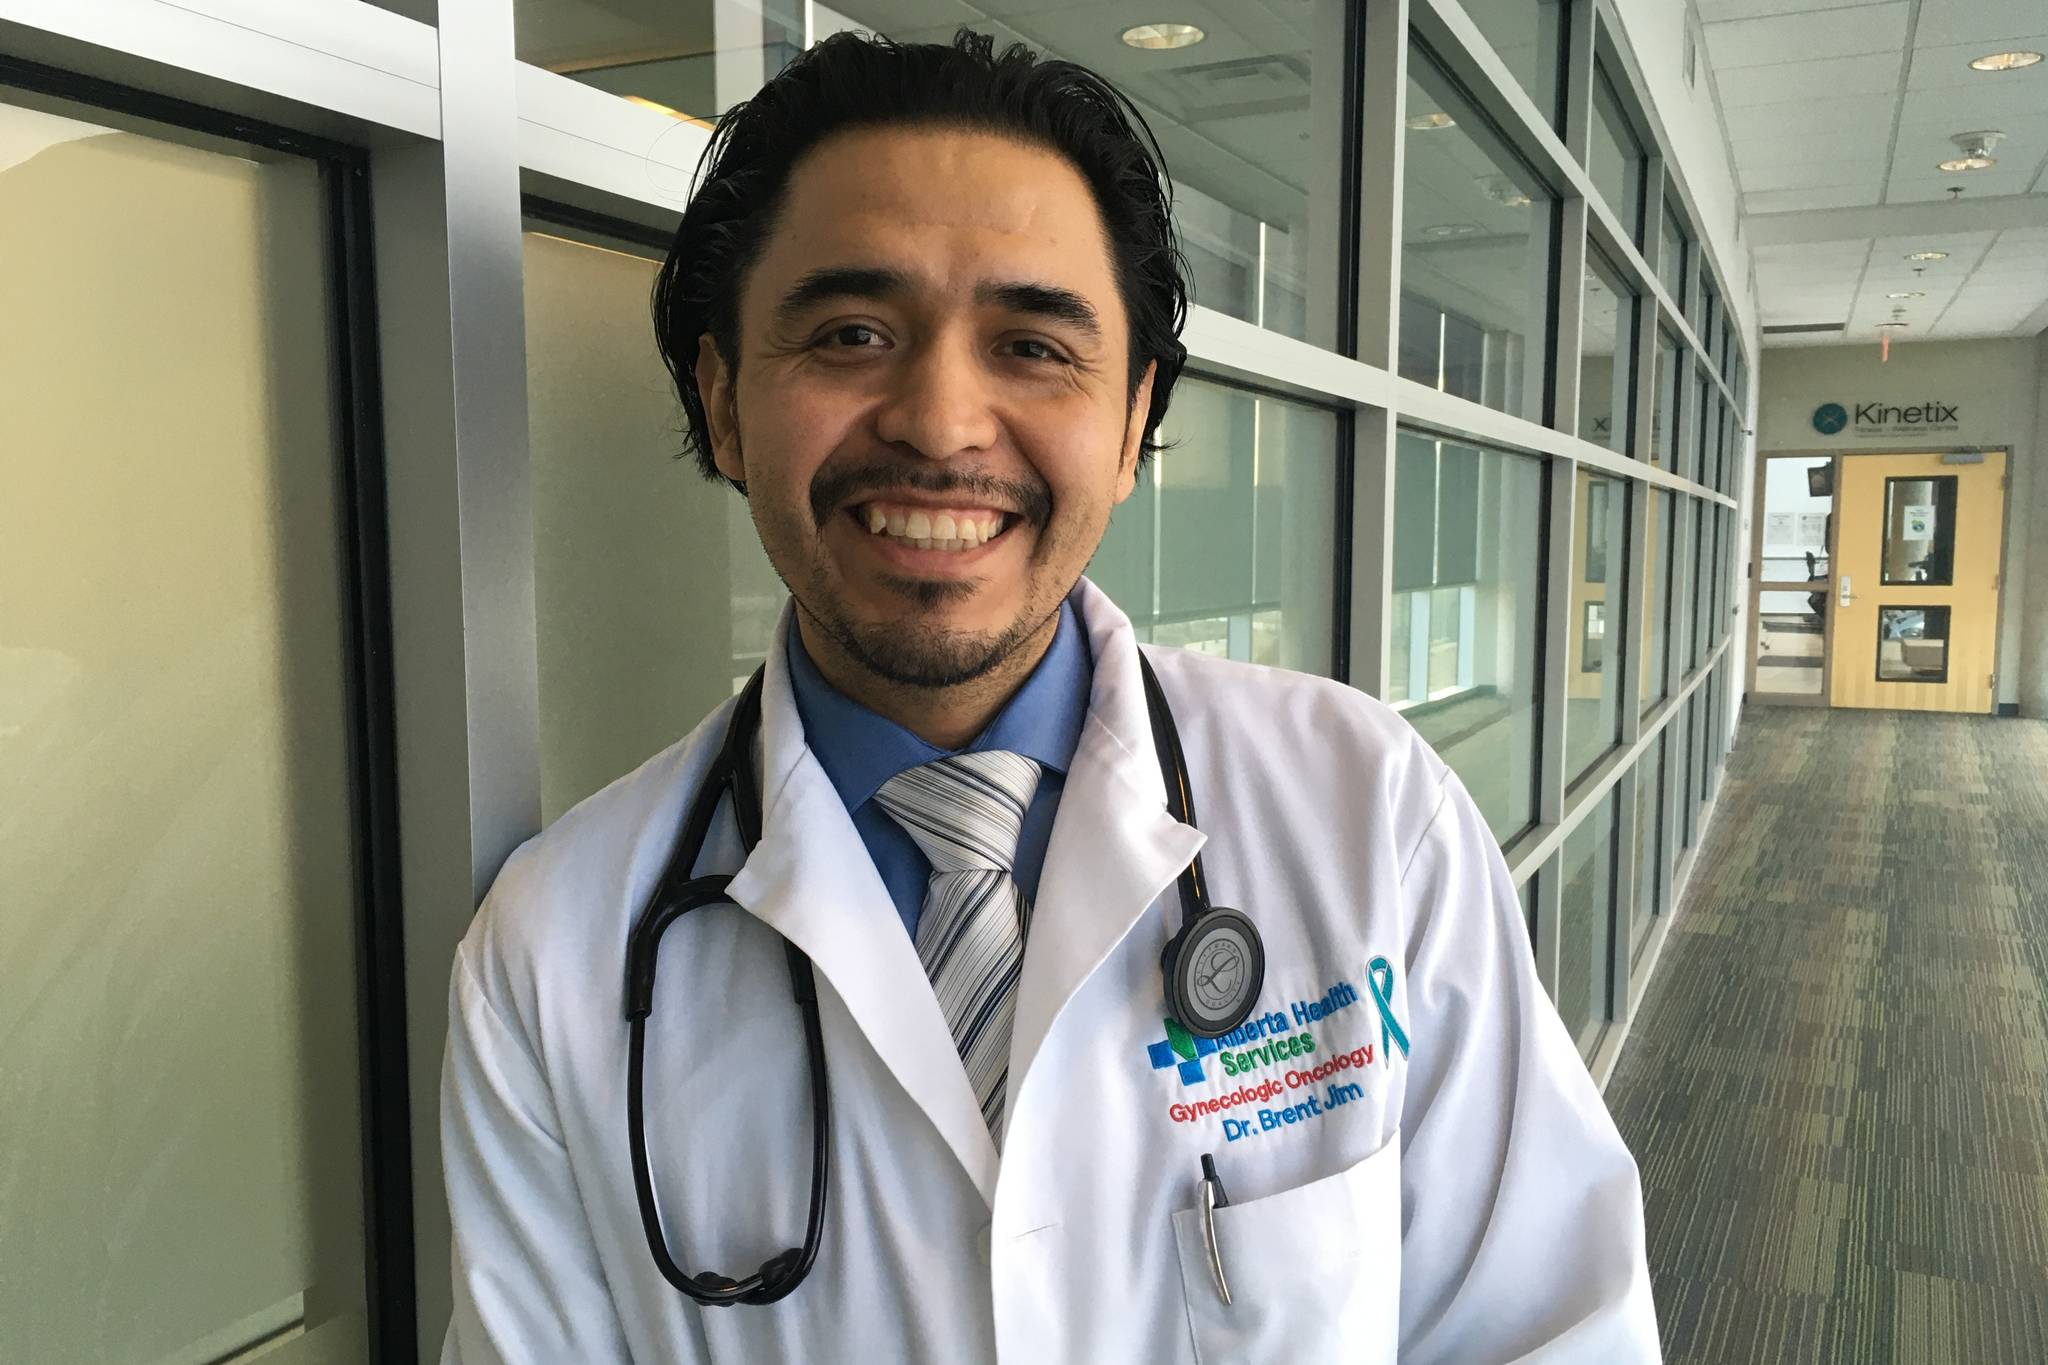 Dr. Brent Jim, from the tiny village of Witset, B.C., is the first Indigenous gynecologic oncologist in the country. (Contributed photo)